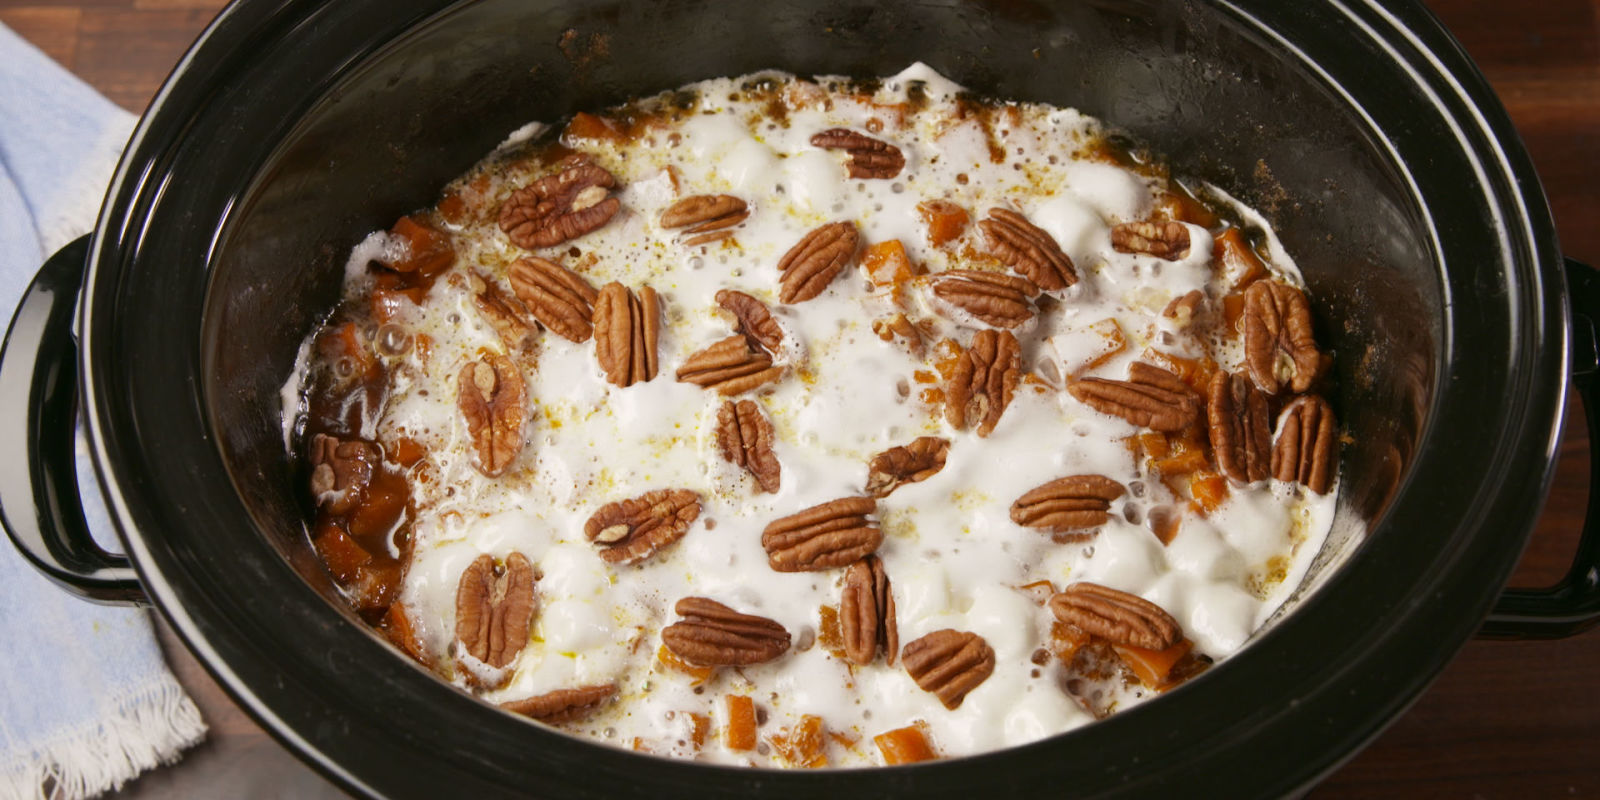 Best Crock Pot Sweet Potato Casserole Recipe How To Make Crock Pot Sweet Potato Casserole